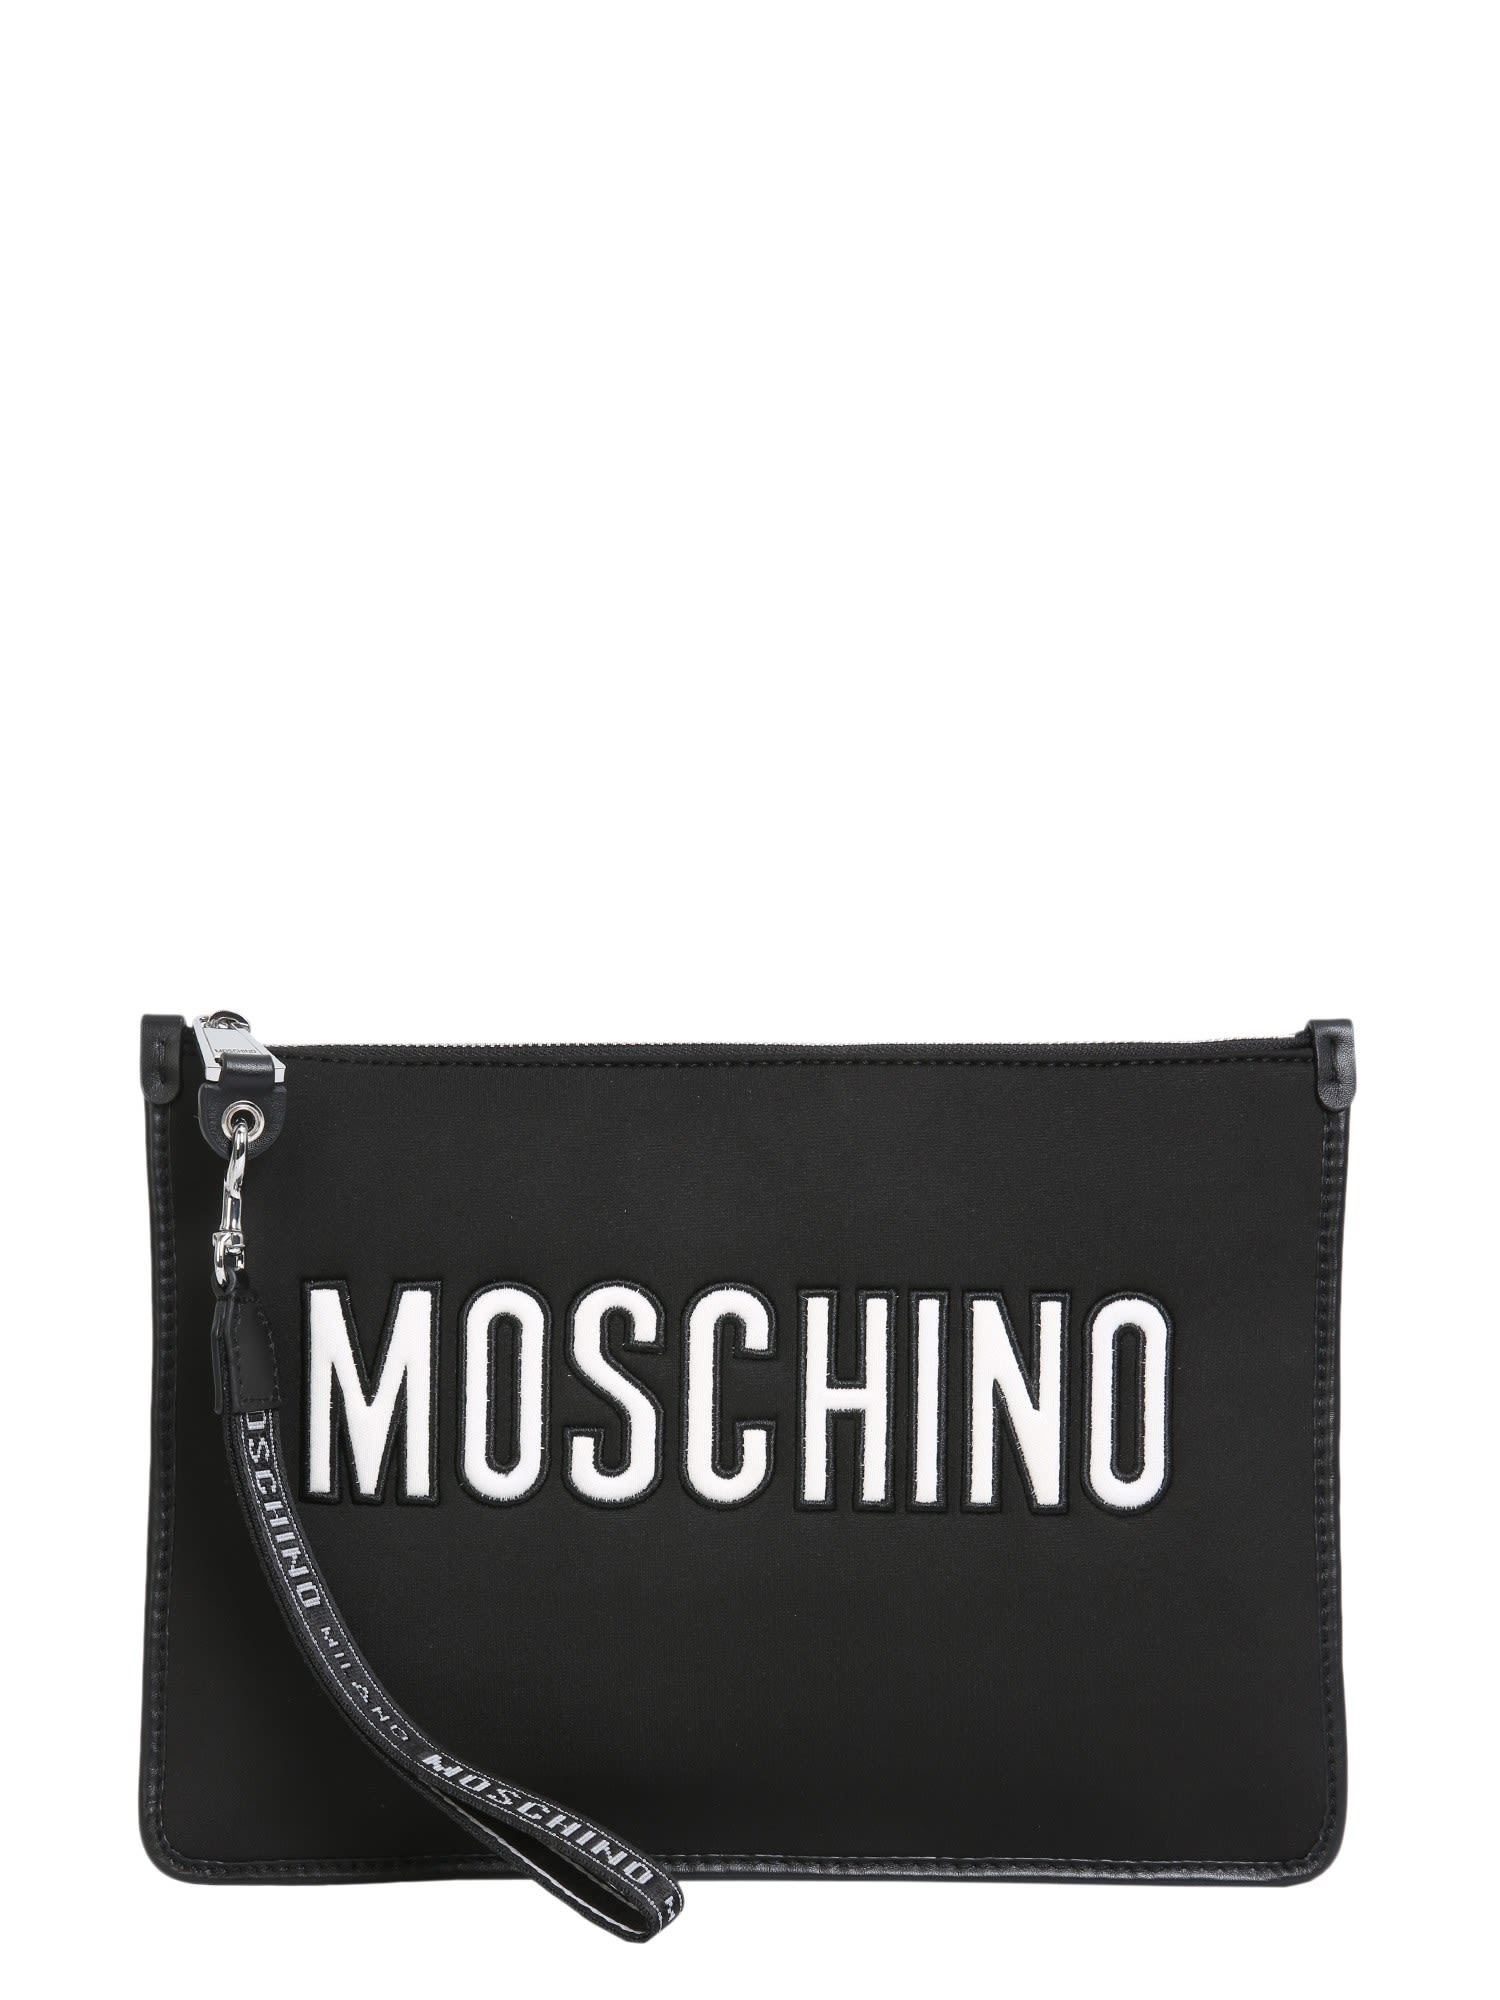 LOGO EMBROIDERED CLUTCH BAG